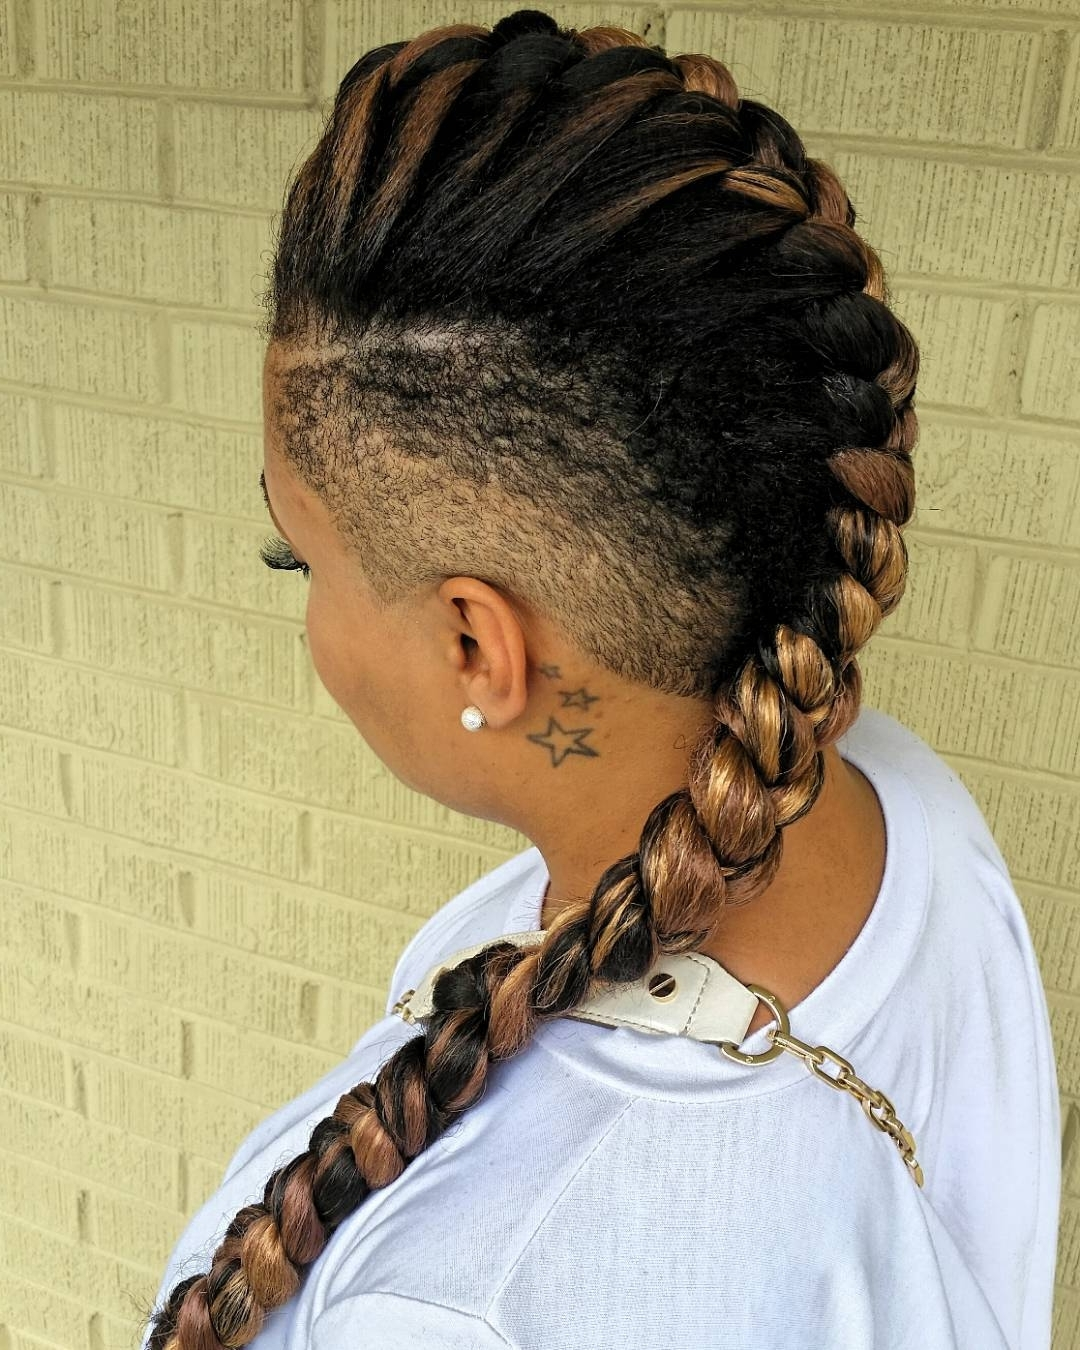 Current Braided Hawk Hairstyles For Mohawk Braids: 12 Braided Mohawk Hairstyles That Get Attention (View 4 of 20)